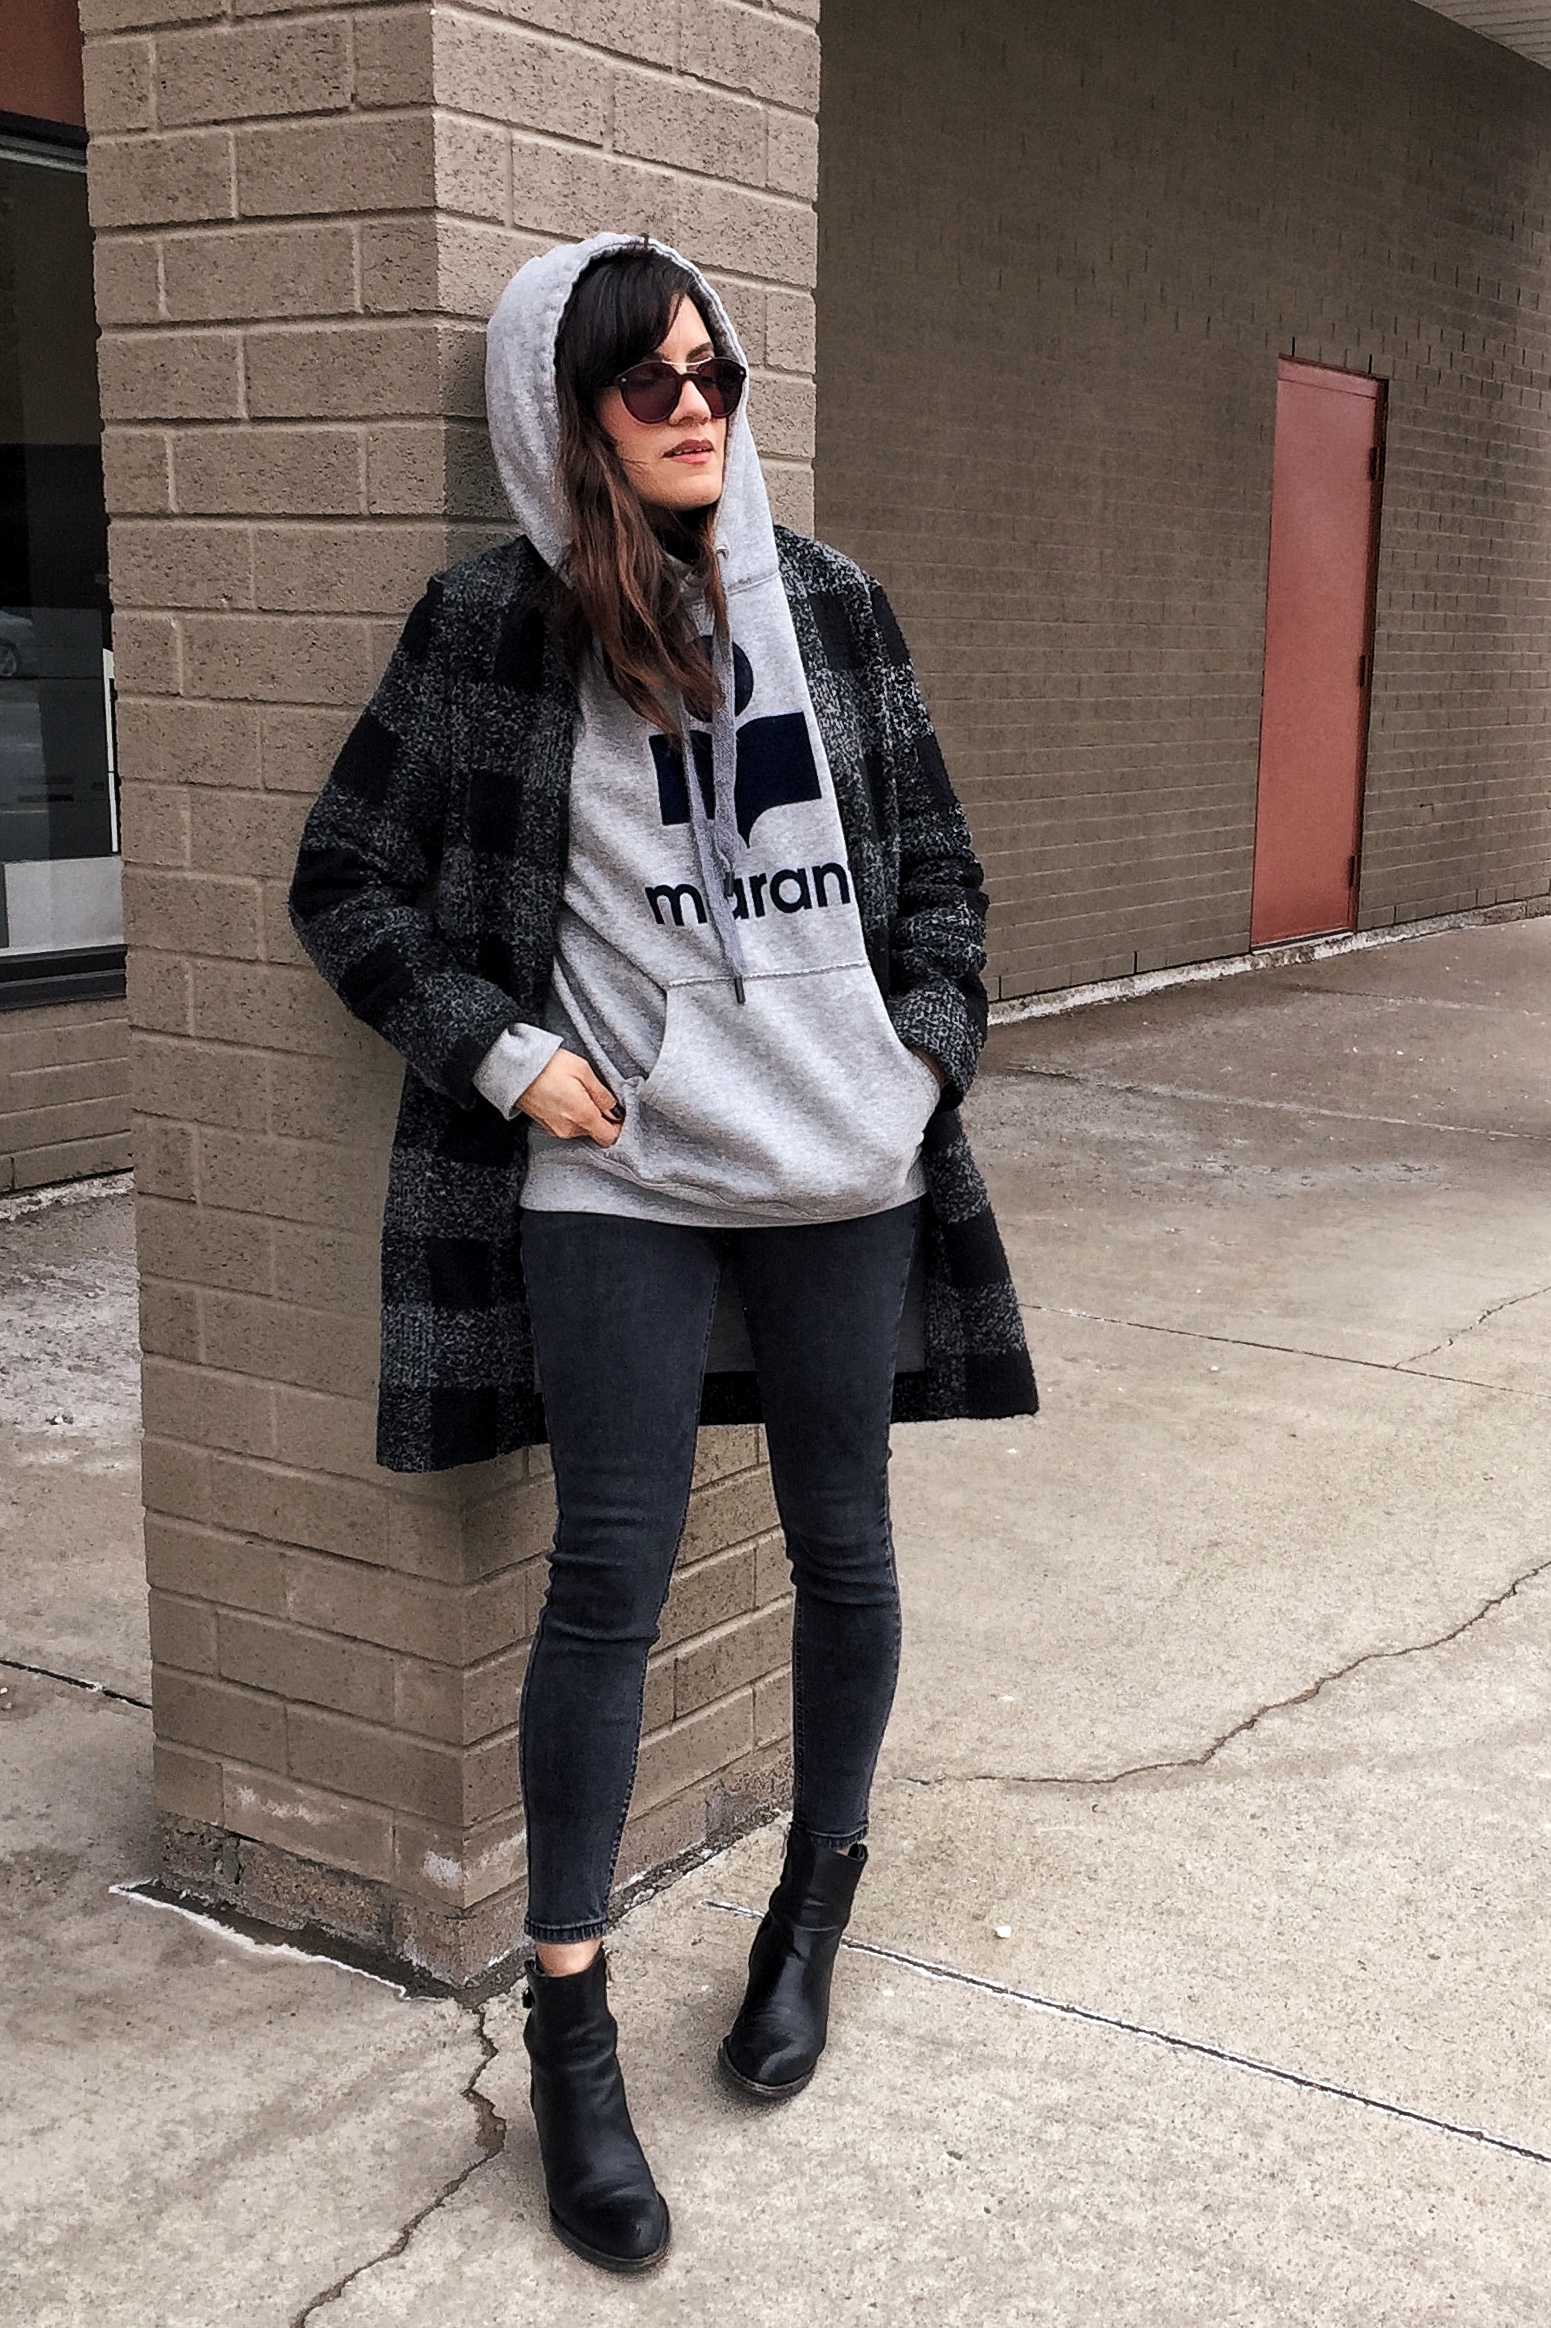 woahstyle.com - 365 outfits - day 2 spring 2018 - nathalie martin.jpg